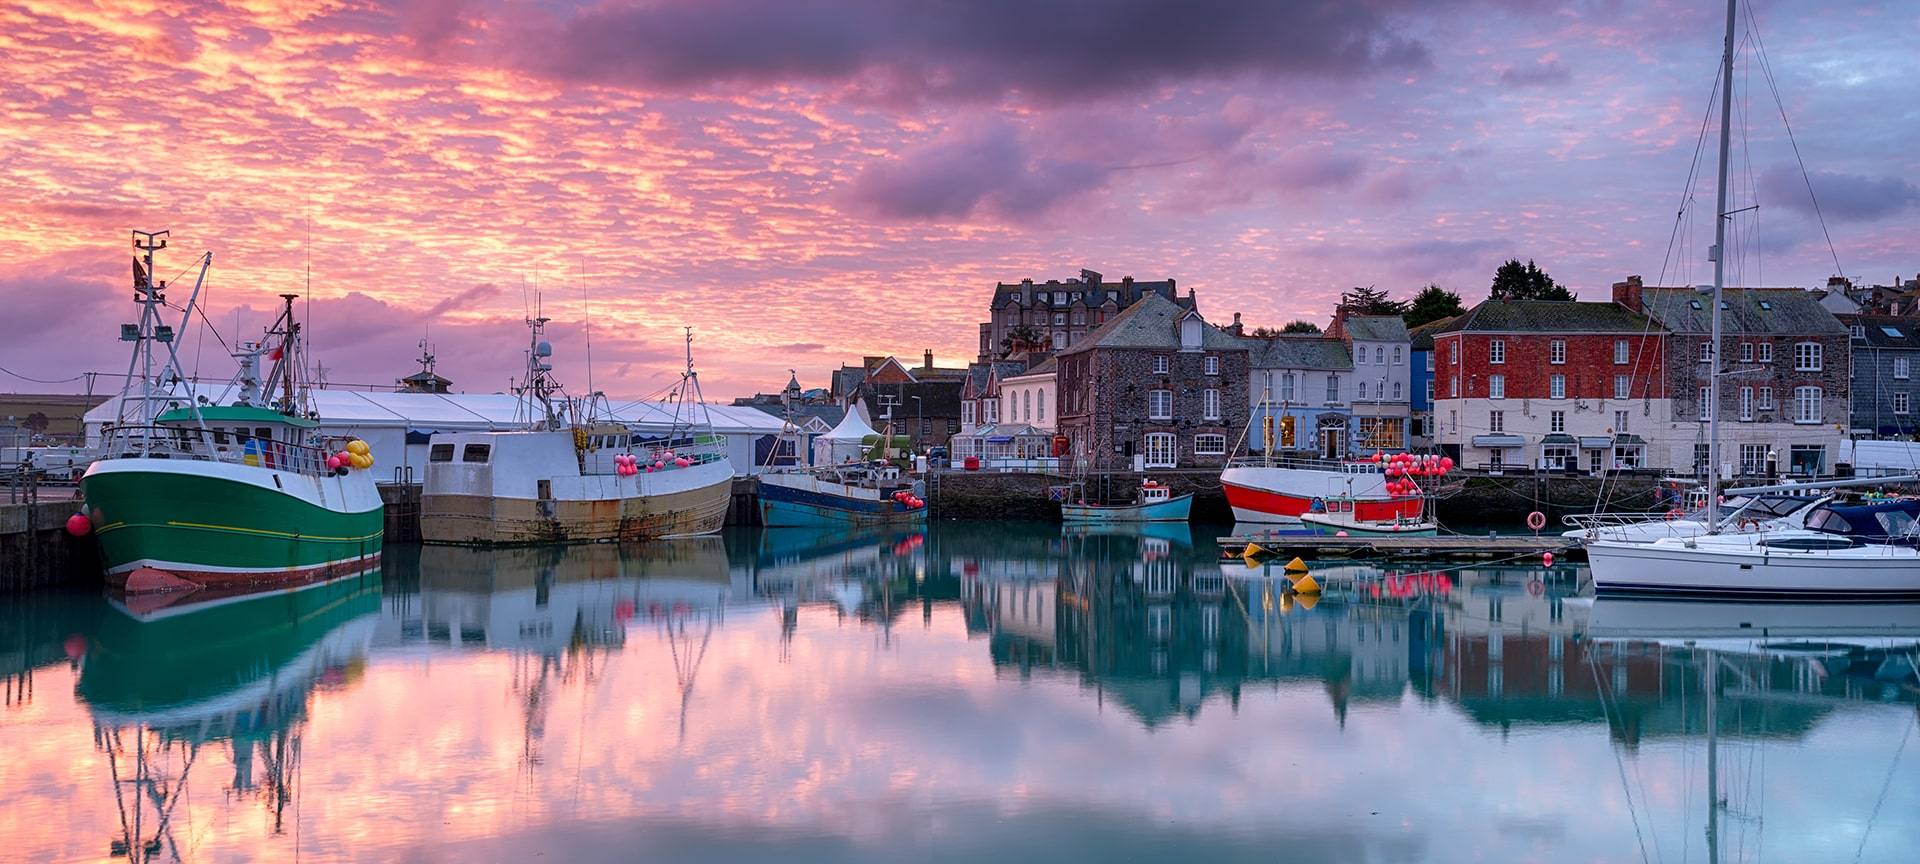 Padstow is a charming working fishing port and famous foodie destination - surrounded by glorious sandy beaches and is the start & end point for The Camel Trail.